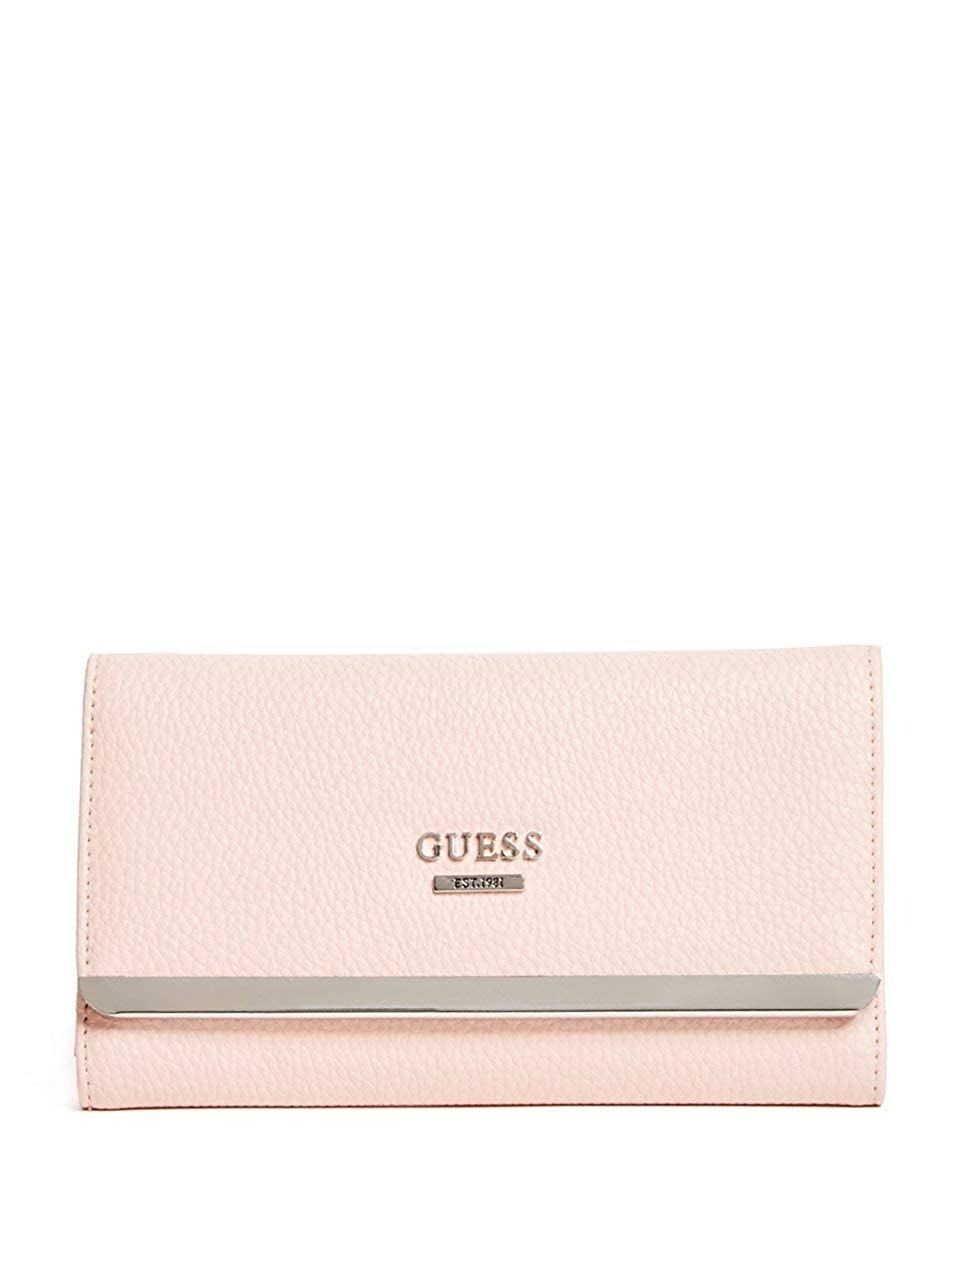 Amazon.com: Guess Factory - Cartera larga para mujer, talla ...